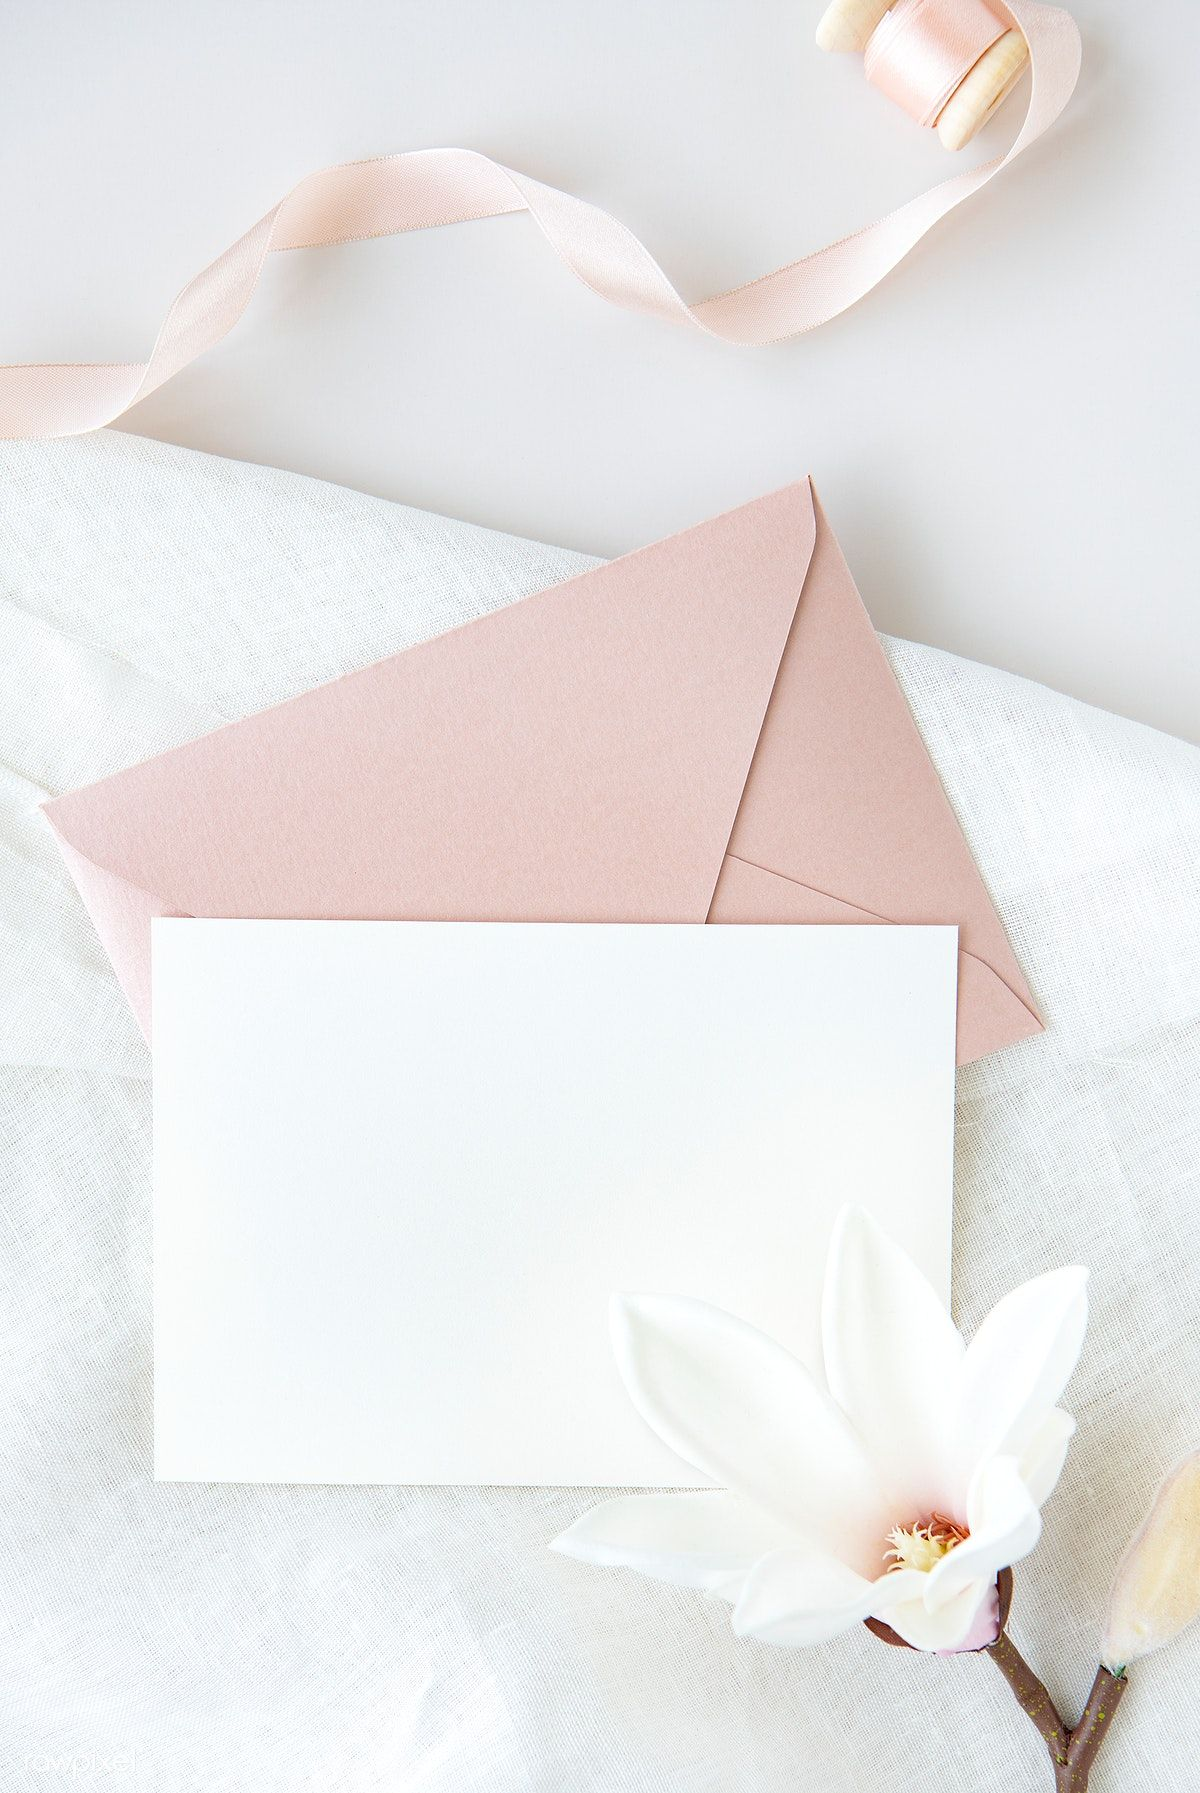 Download Premium Psd Of Blank White Card Template Mockup 1204281 In 2020 Card Template Invitation Mockup Flower Frame